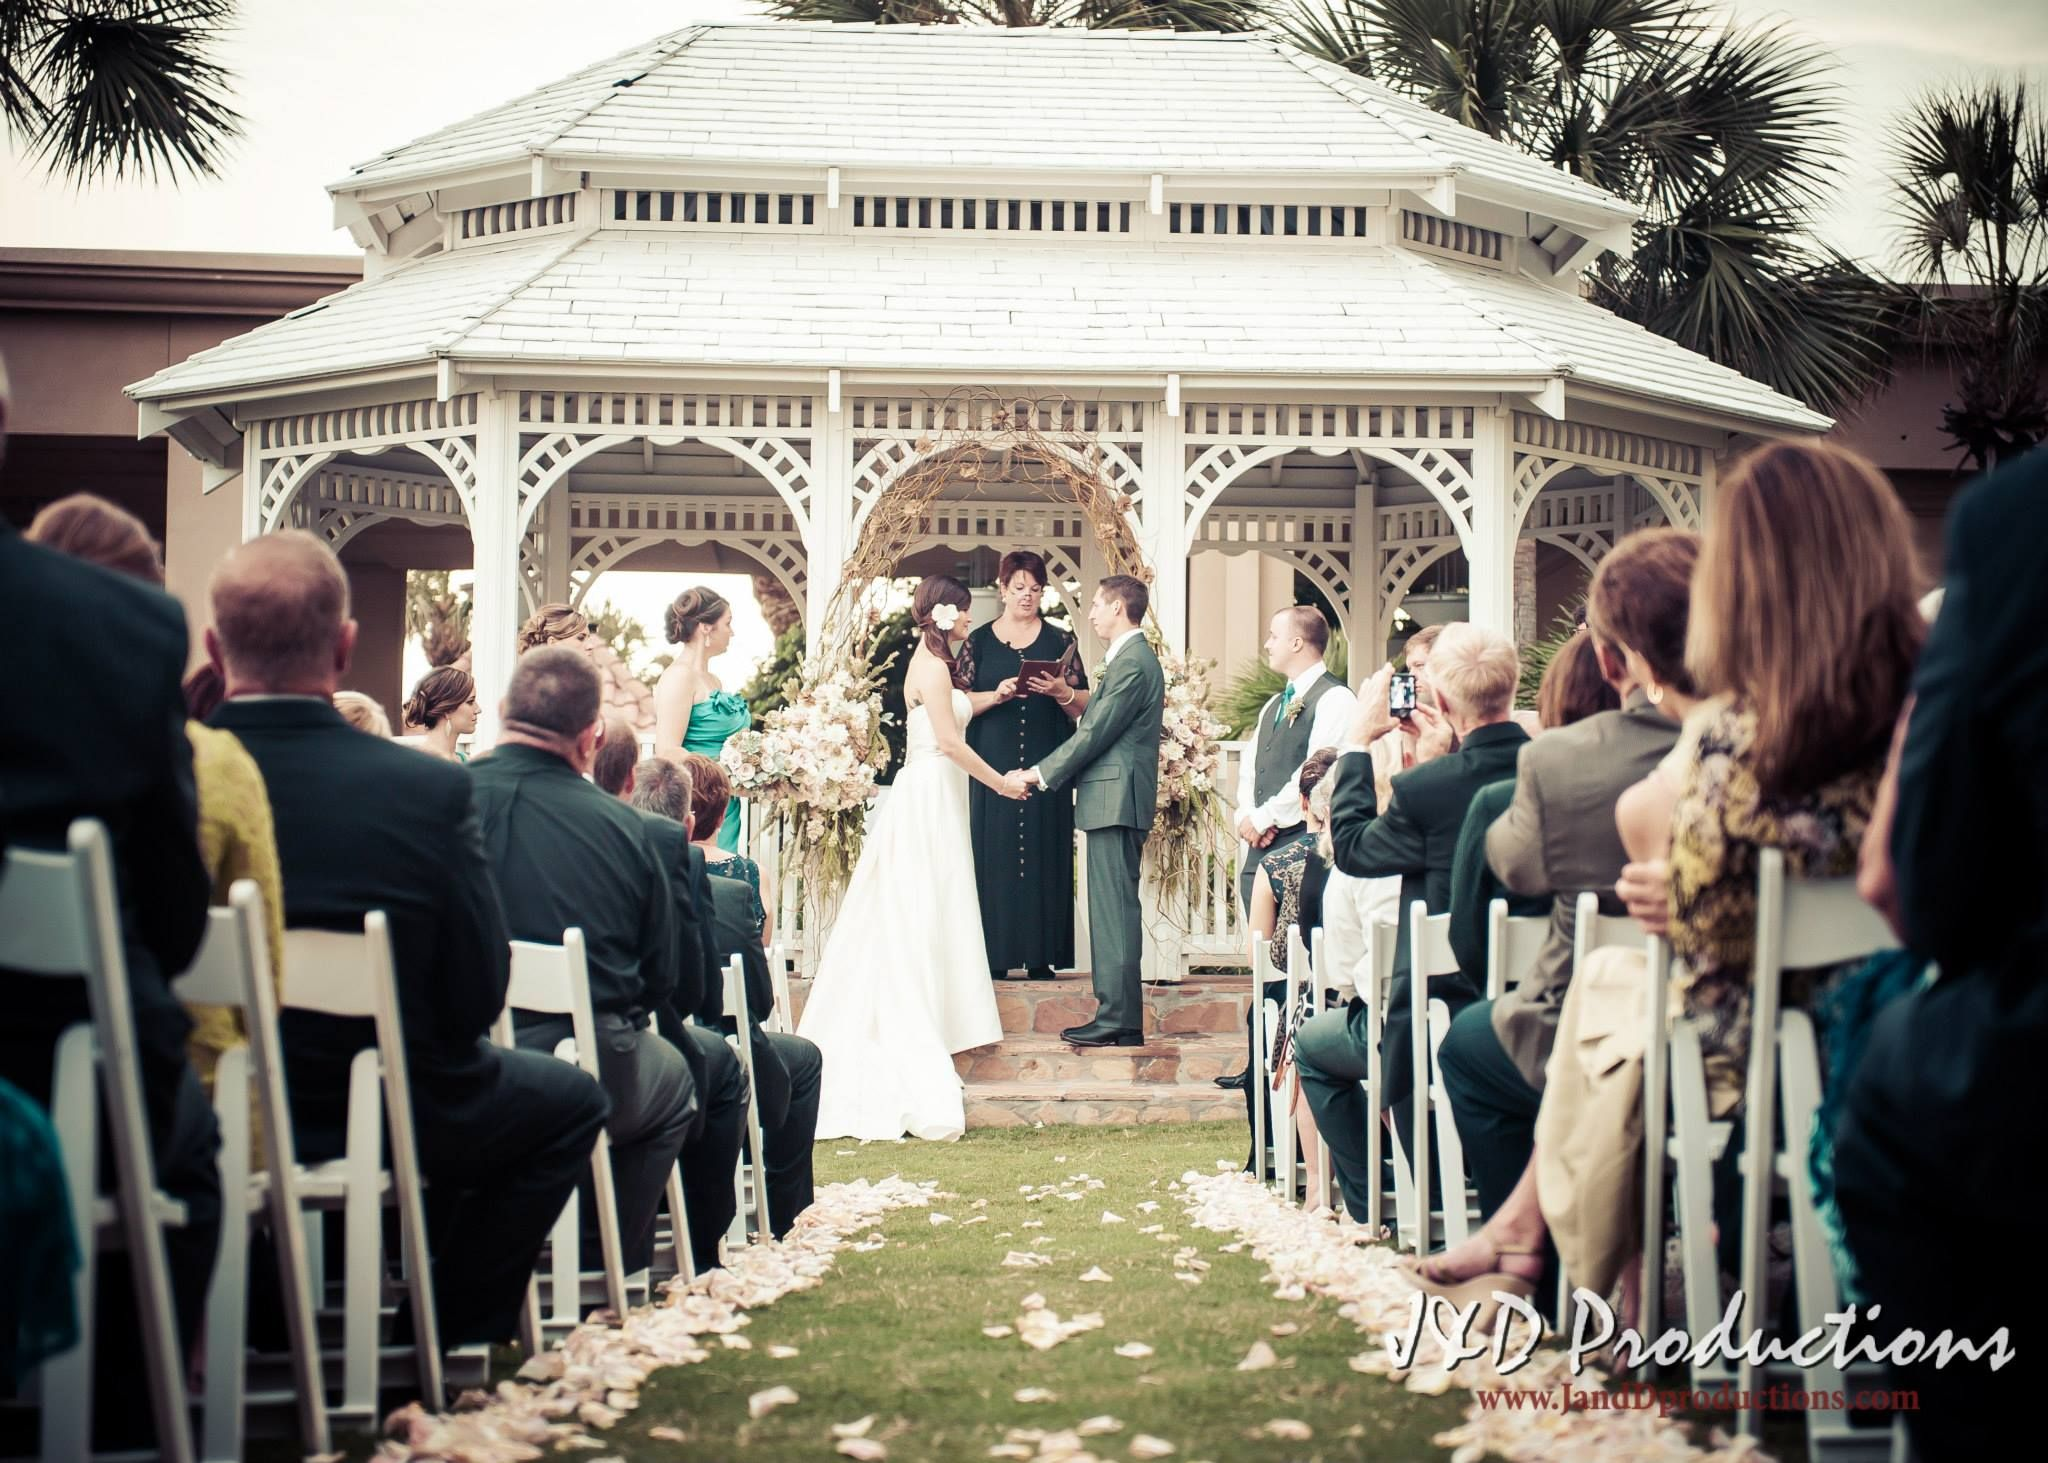 Erin And Andrew S Wedding At The San Luis Resort In Galveston Tx